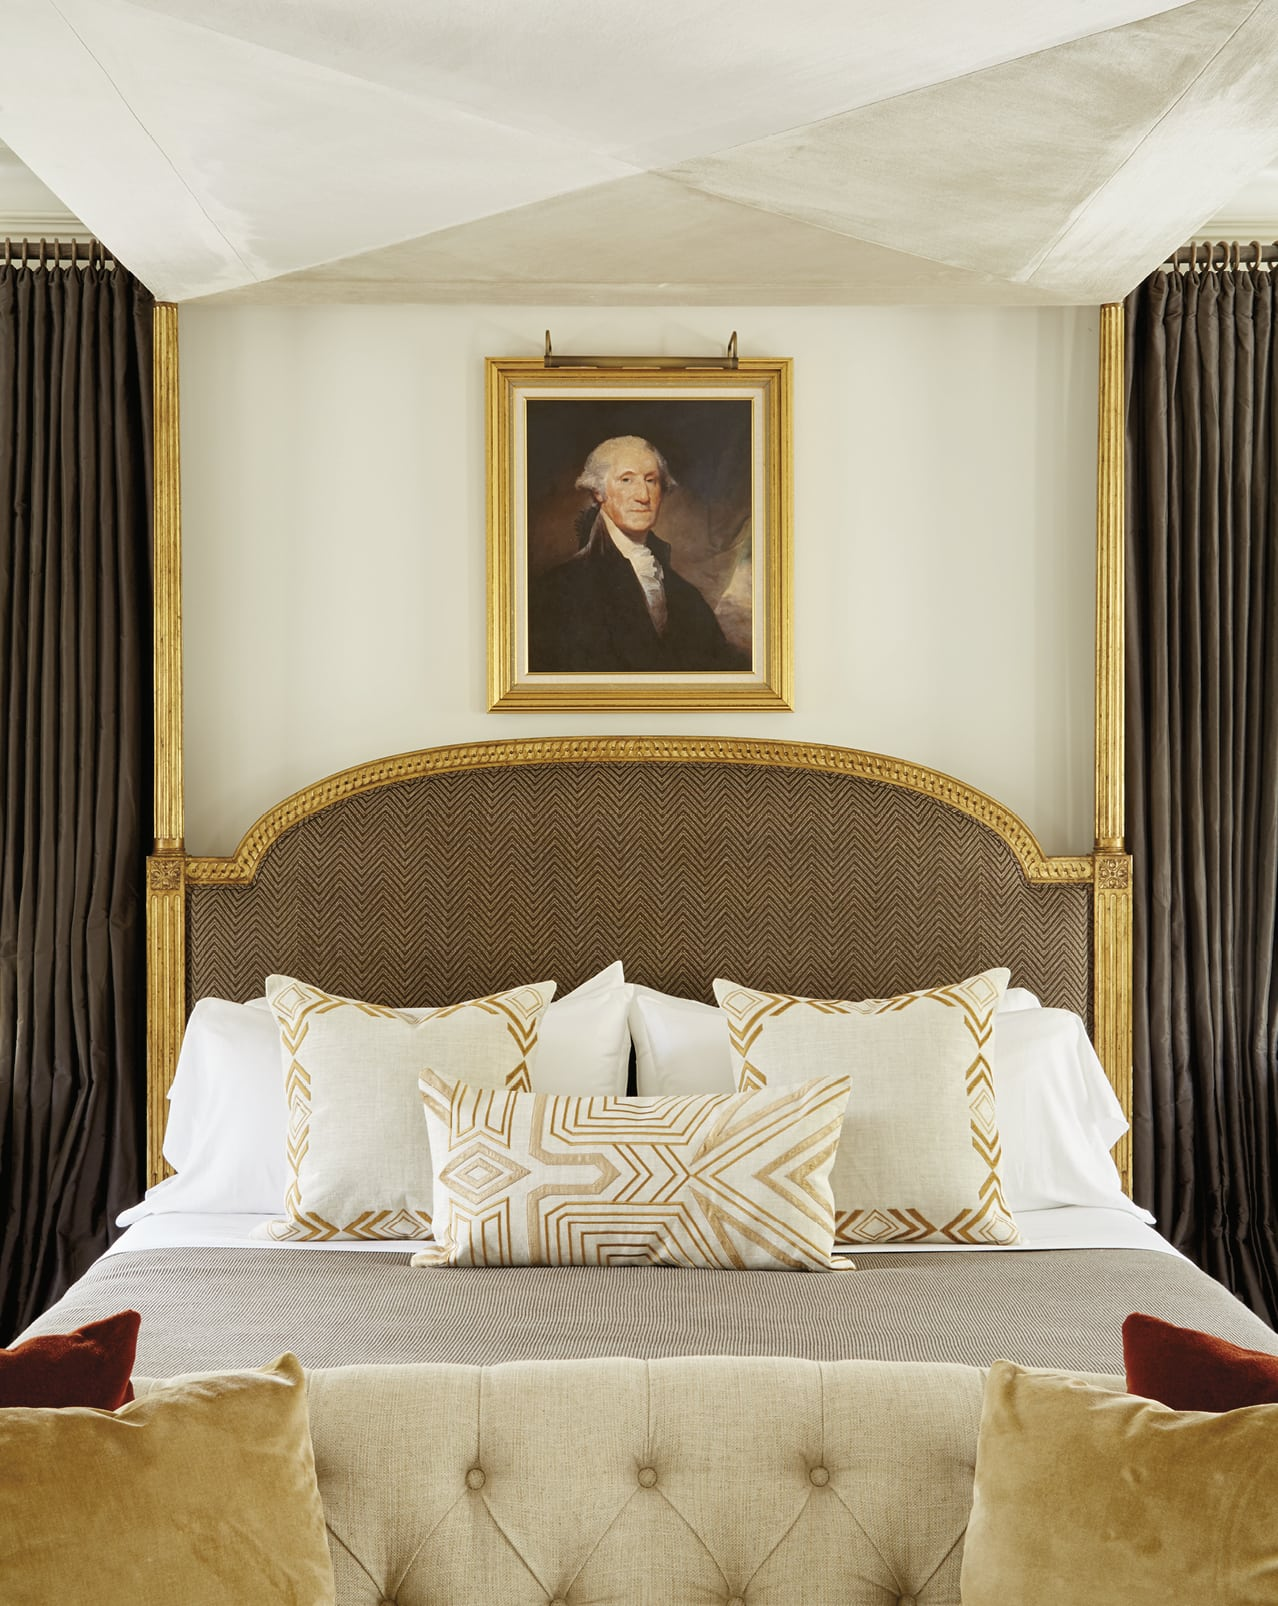 Canopy bed with a portrait of George Washington at the head